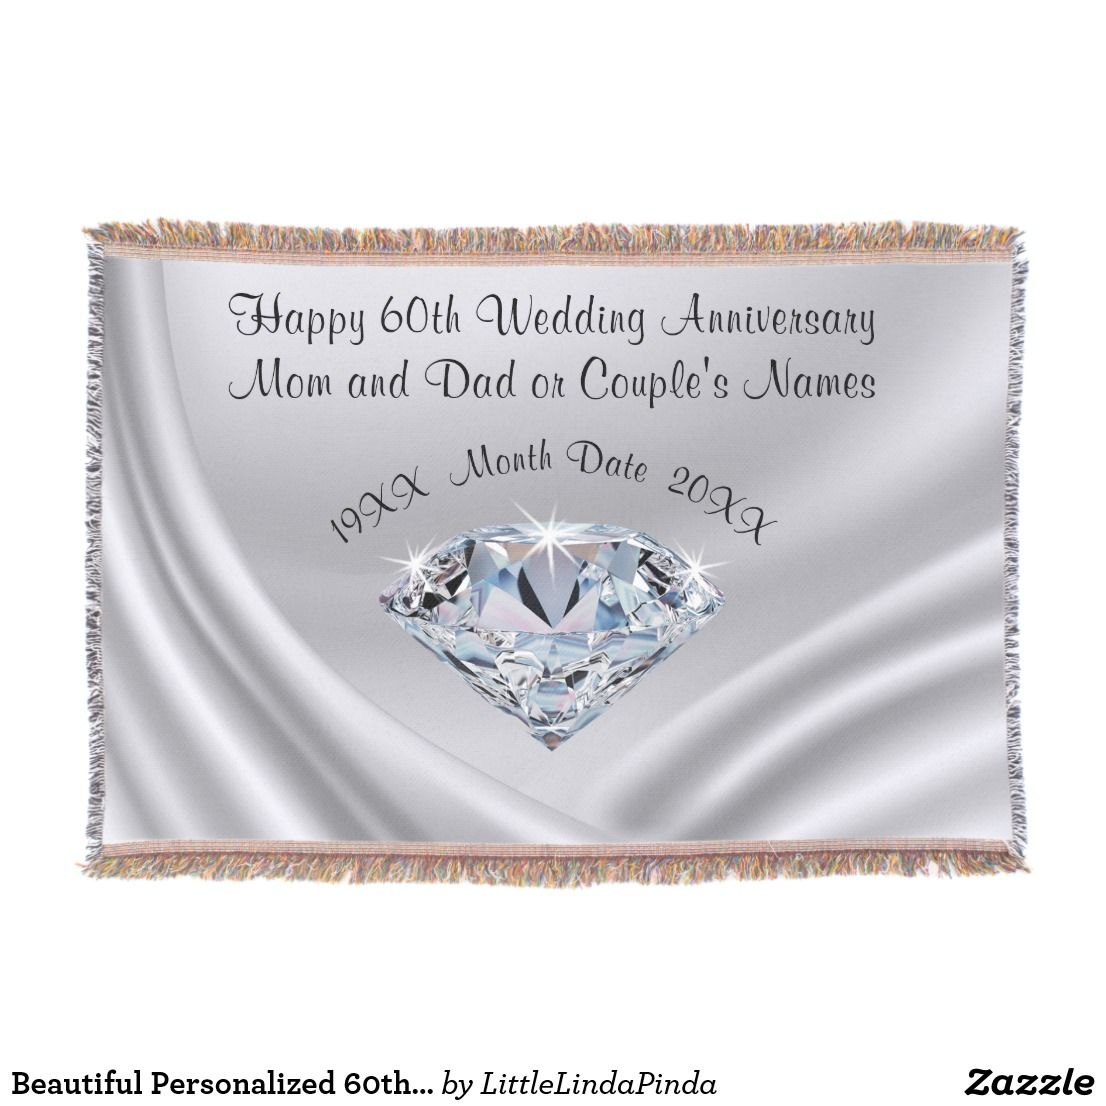 Beautiful Personalized 60th Anniversary Gift Ideas Throw Blanket Zazzle Com In 2020 60th Anniversary Gifts 60th Wedding Anniversary Gifts Anniversary Gifts